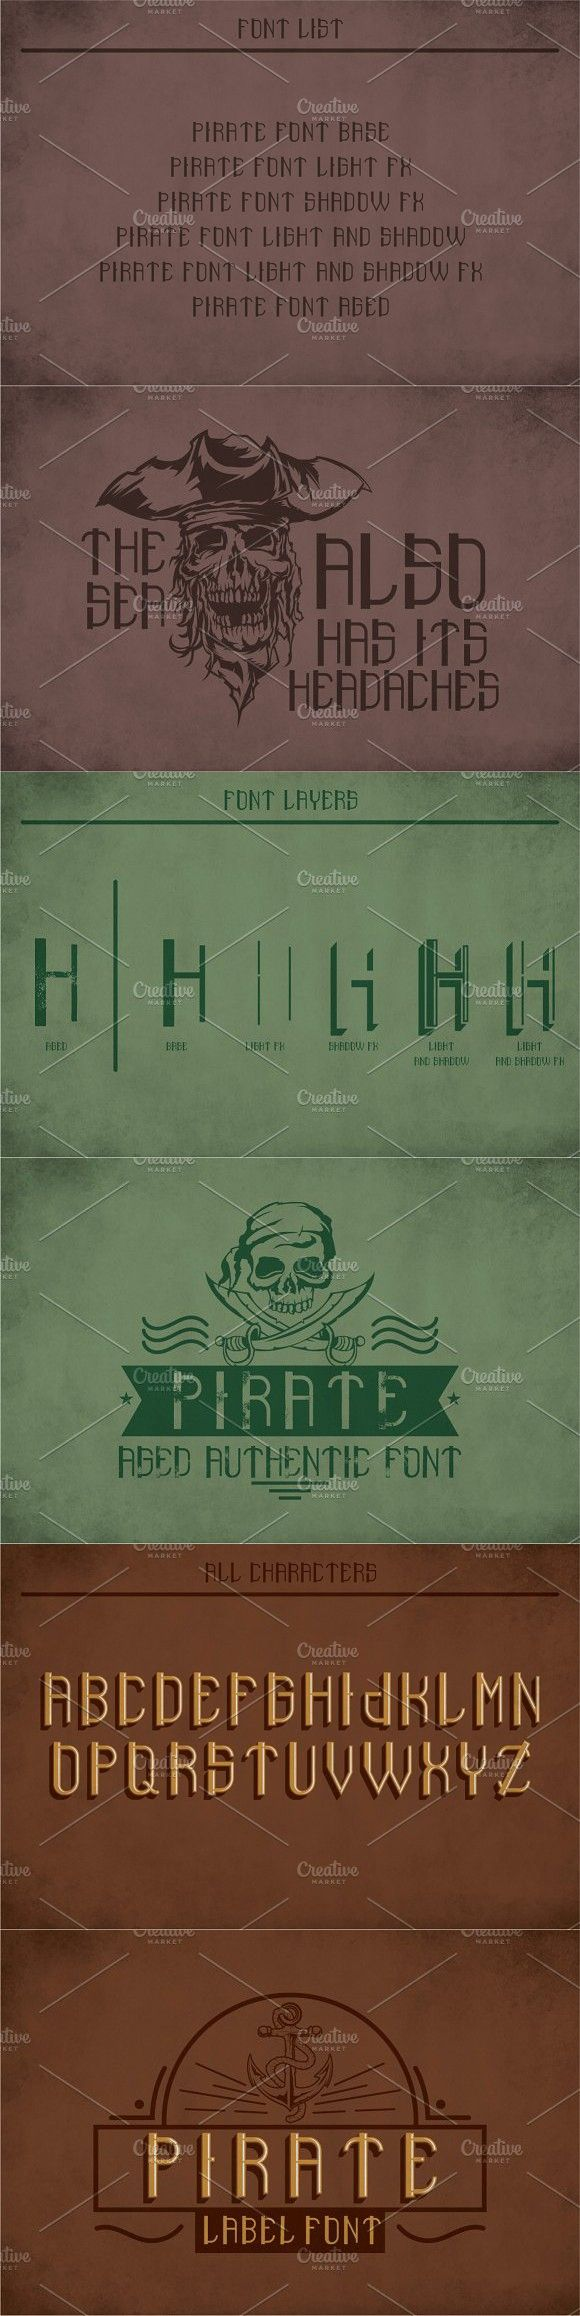 Pirate Modern Label Typeface. Pirate Fonts